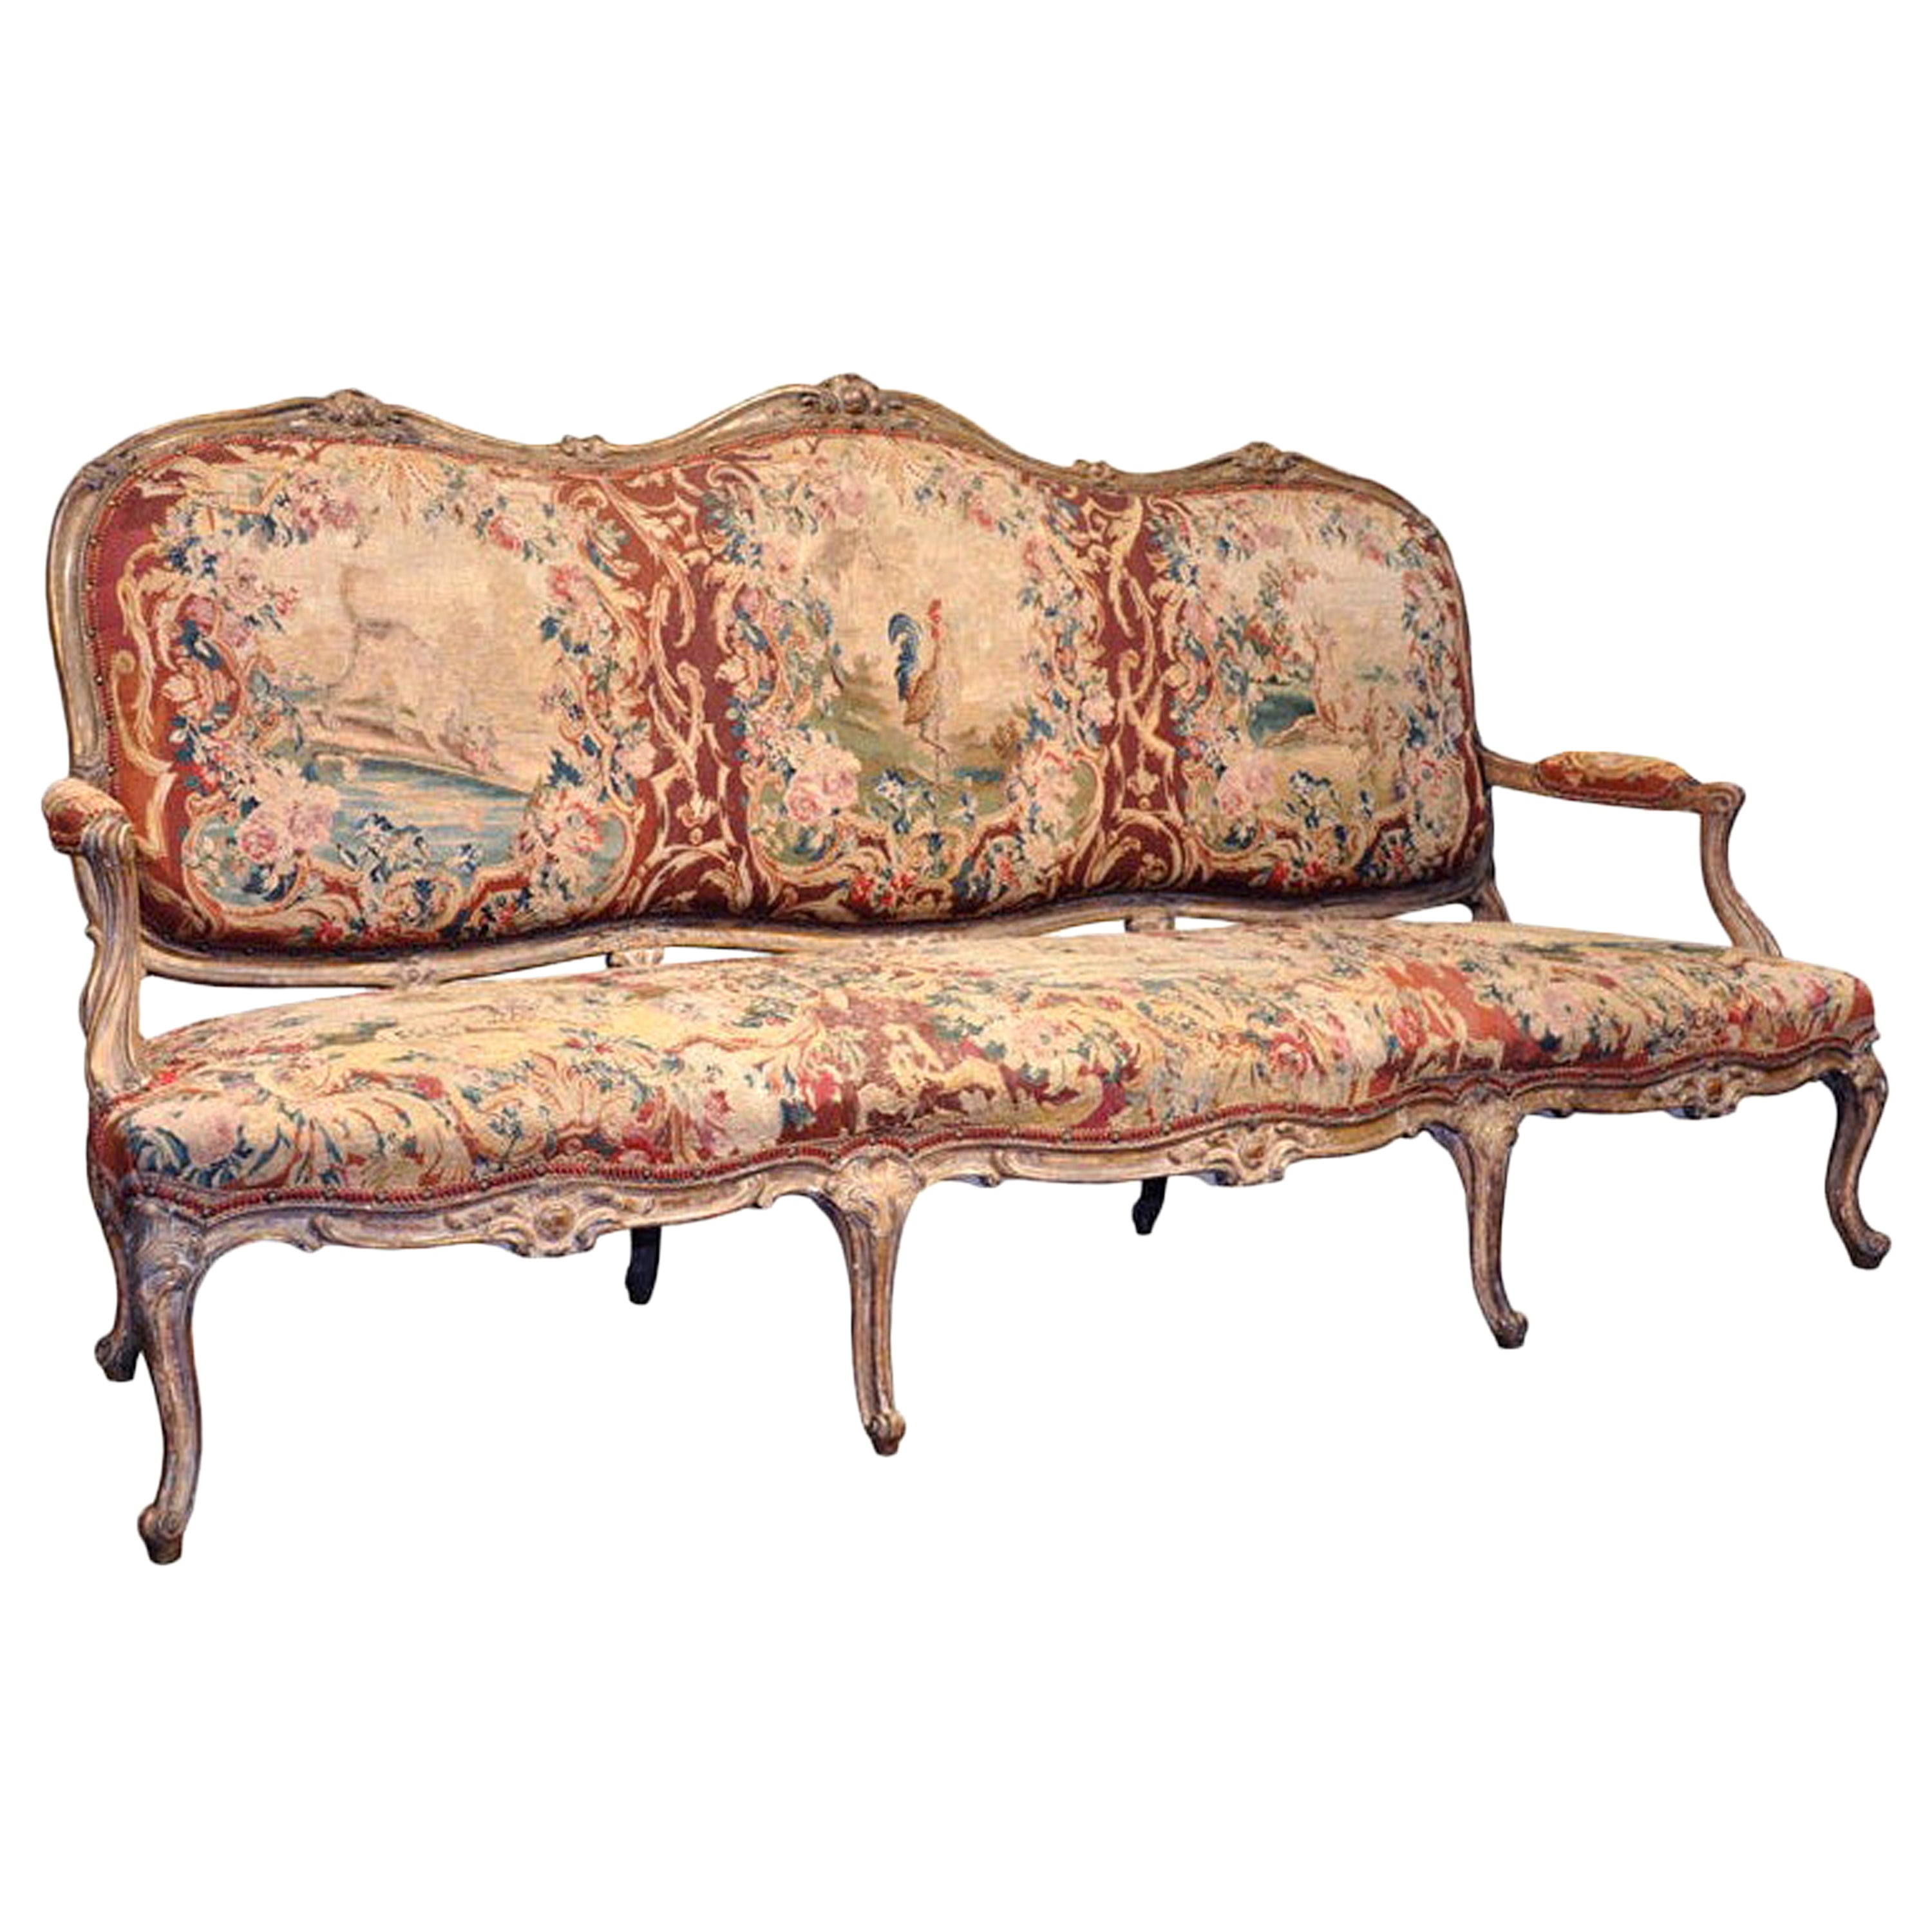 18th Century French Louis XV Carved Giltwood Canapé with Aubusson Tapestry